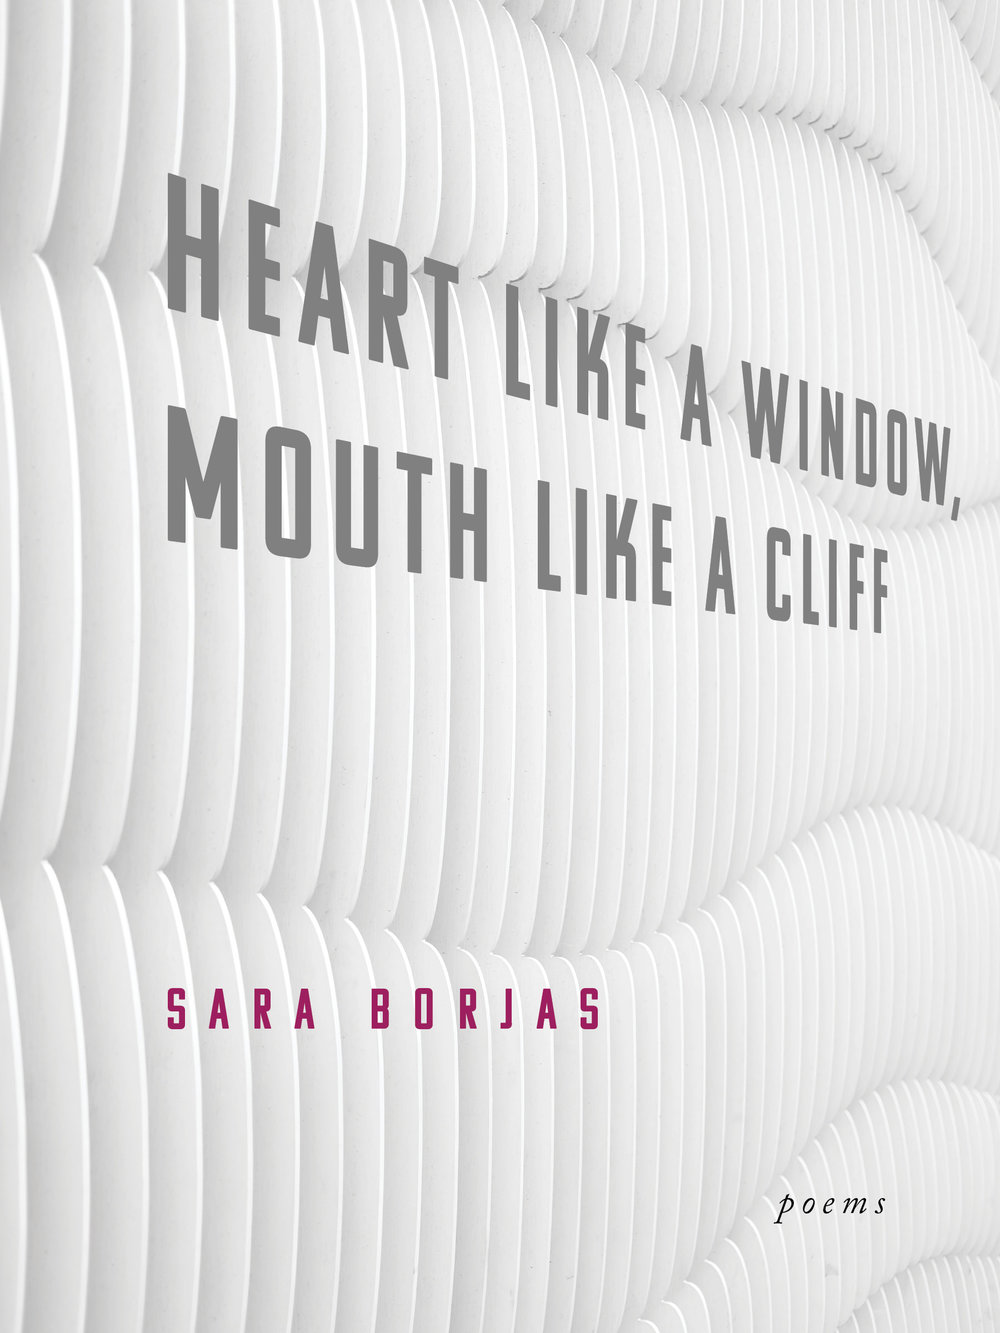 Heart Like a Window, Mouth Like a Cliff - $15 Paperback | Publication Date March 15, 2019ISBN 978-1-934819-79-1